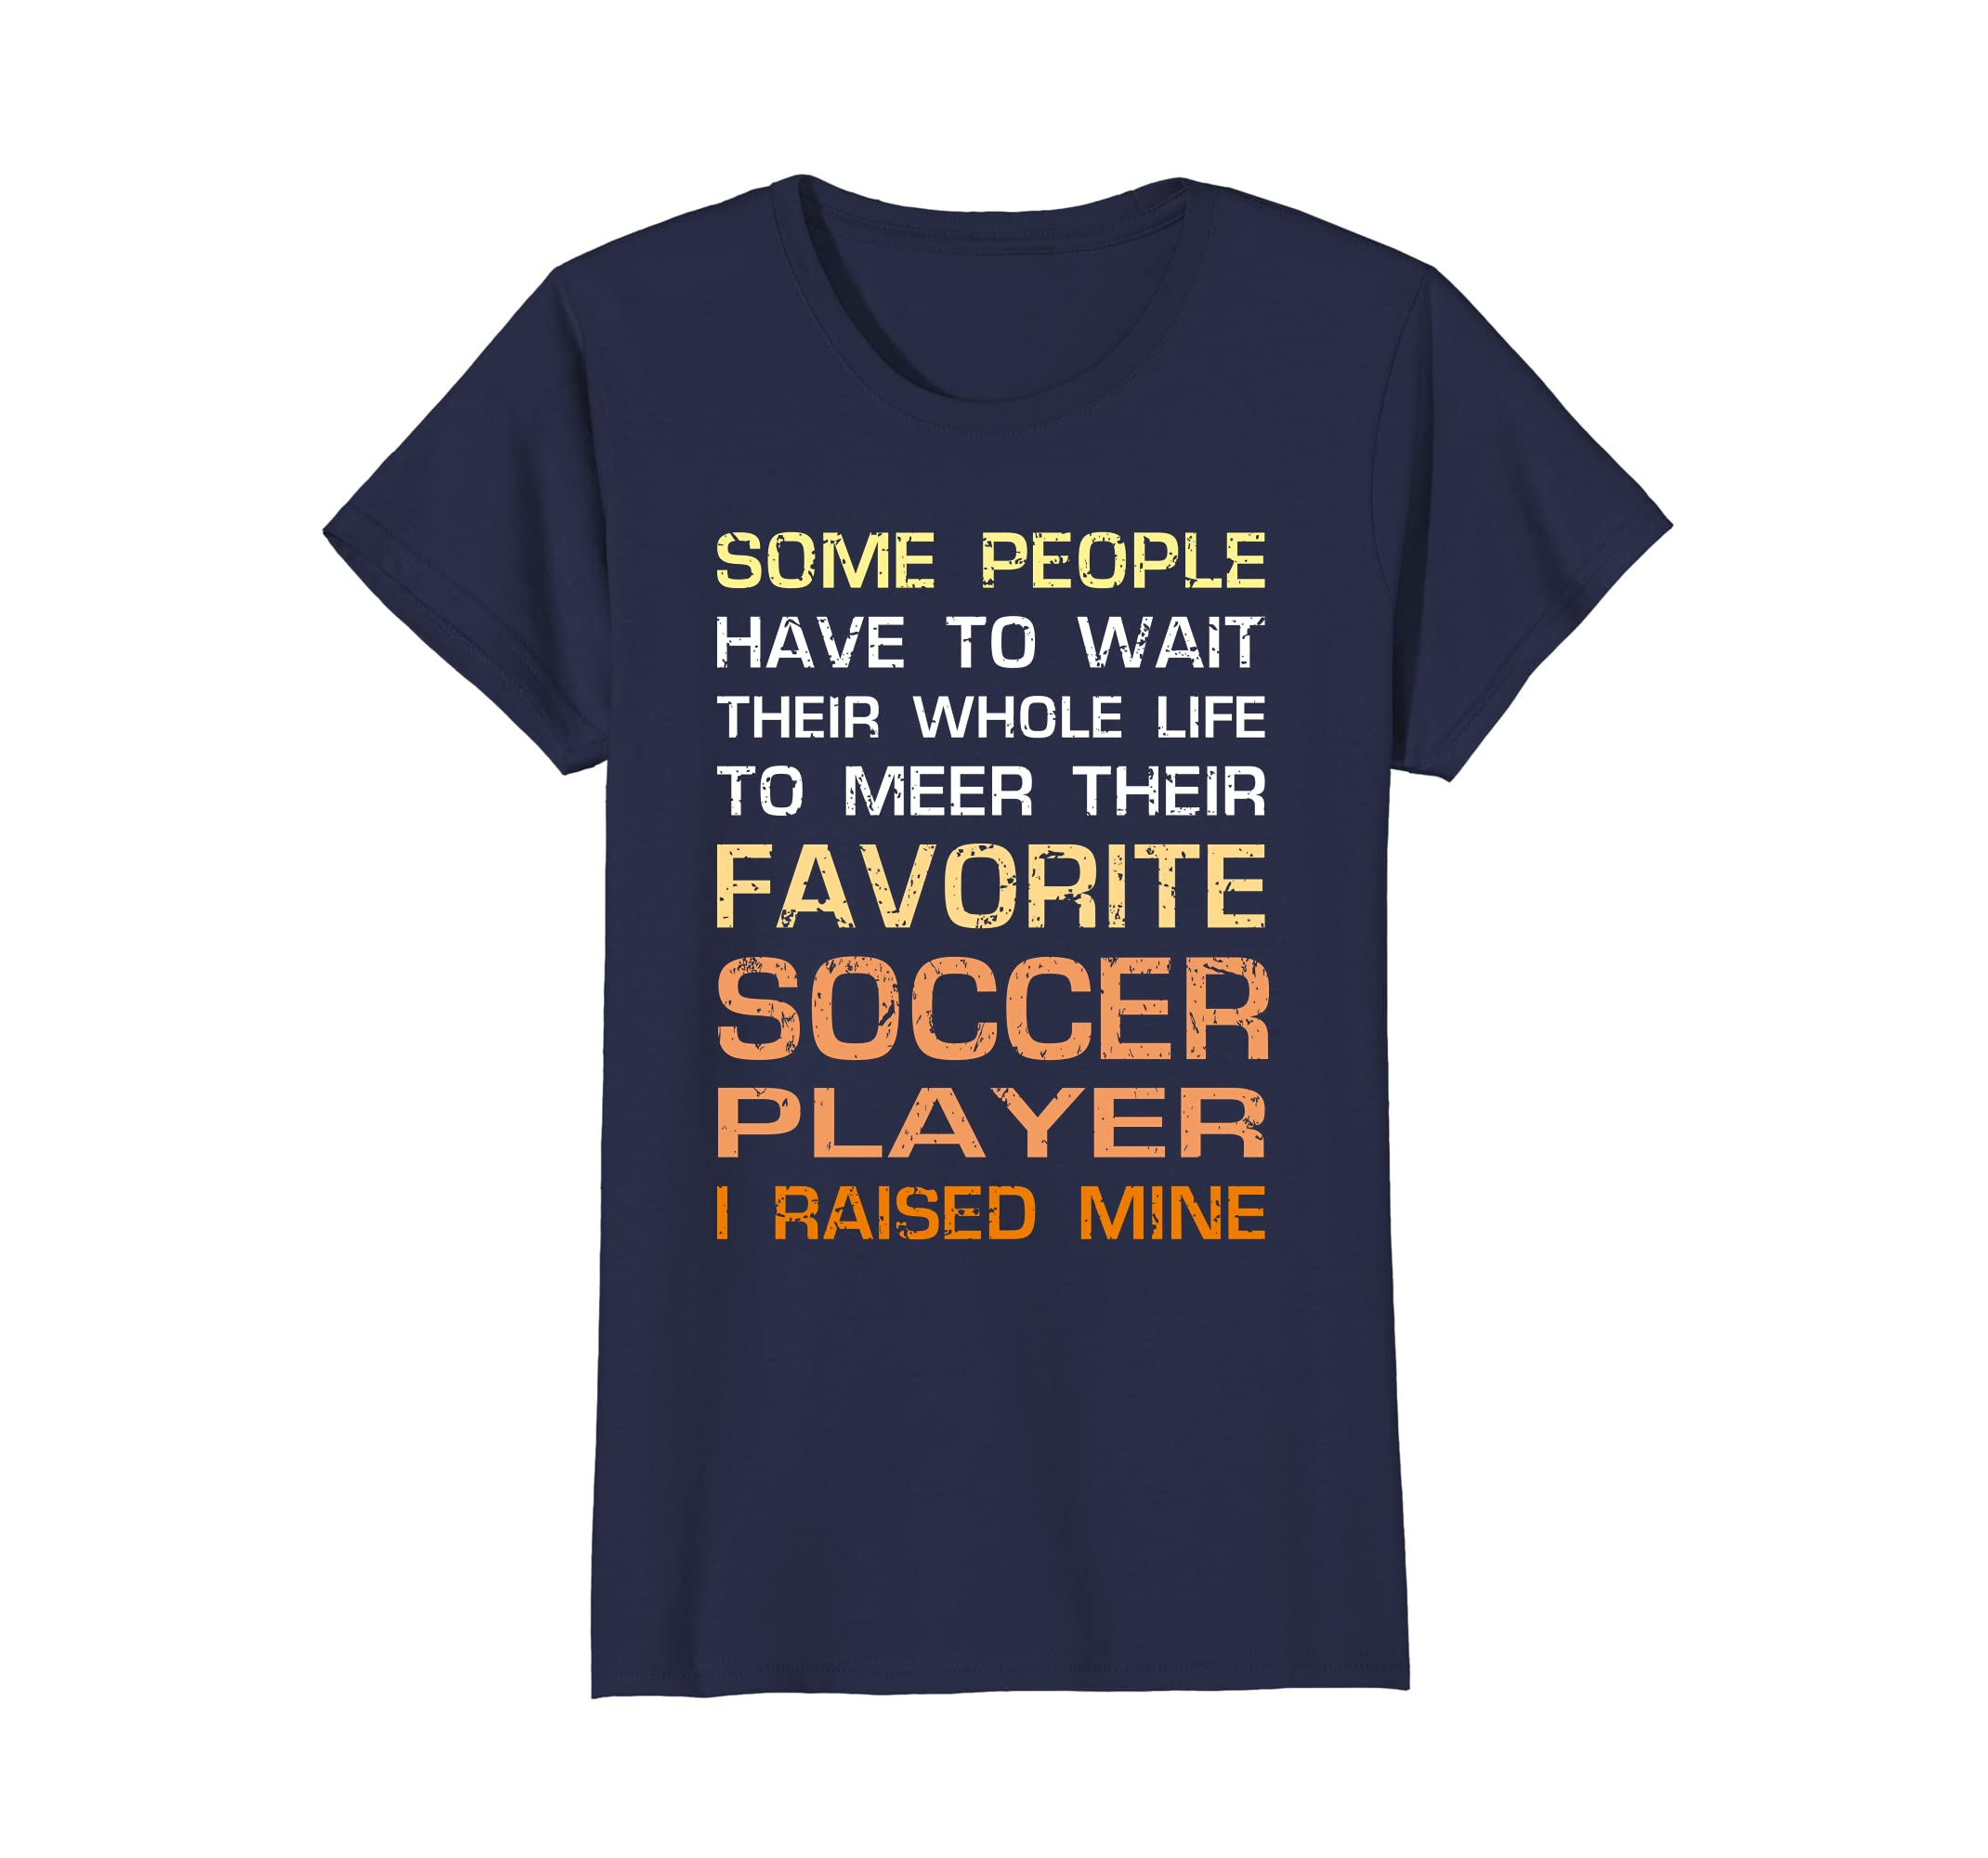 b293ef4f7 Amazon.com  Favorite Soccer Player Mom Dad Gift I Raised Mine T-Shirt   Clothing